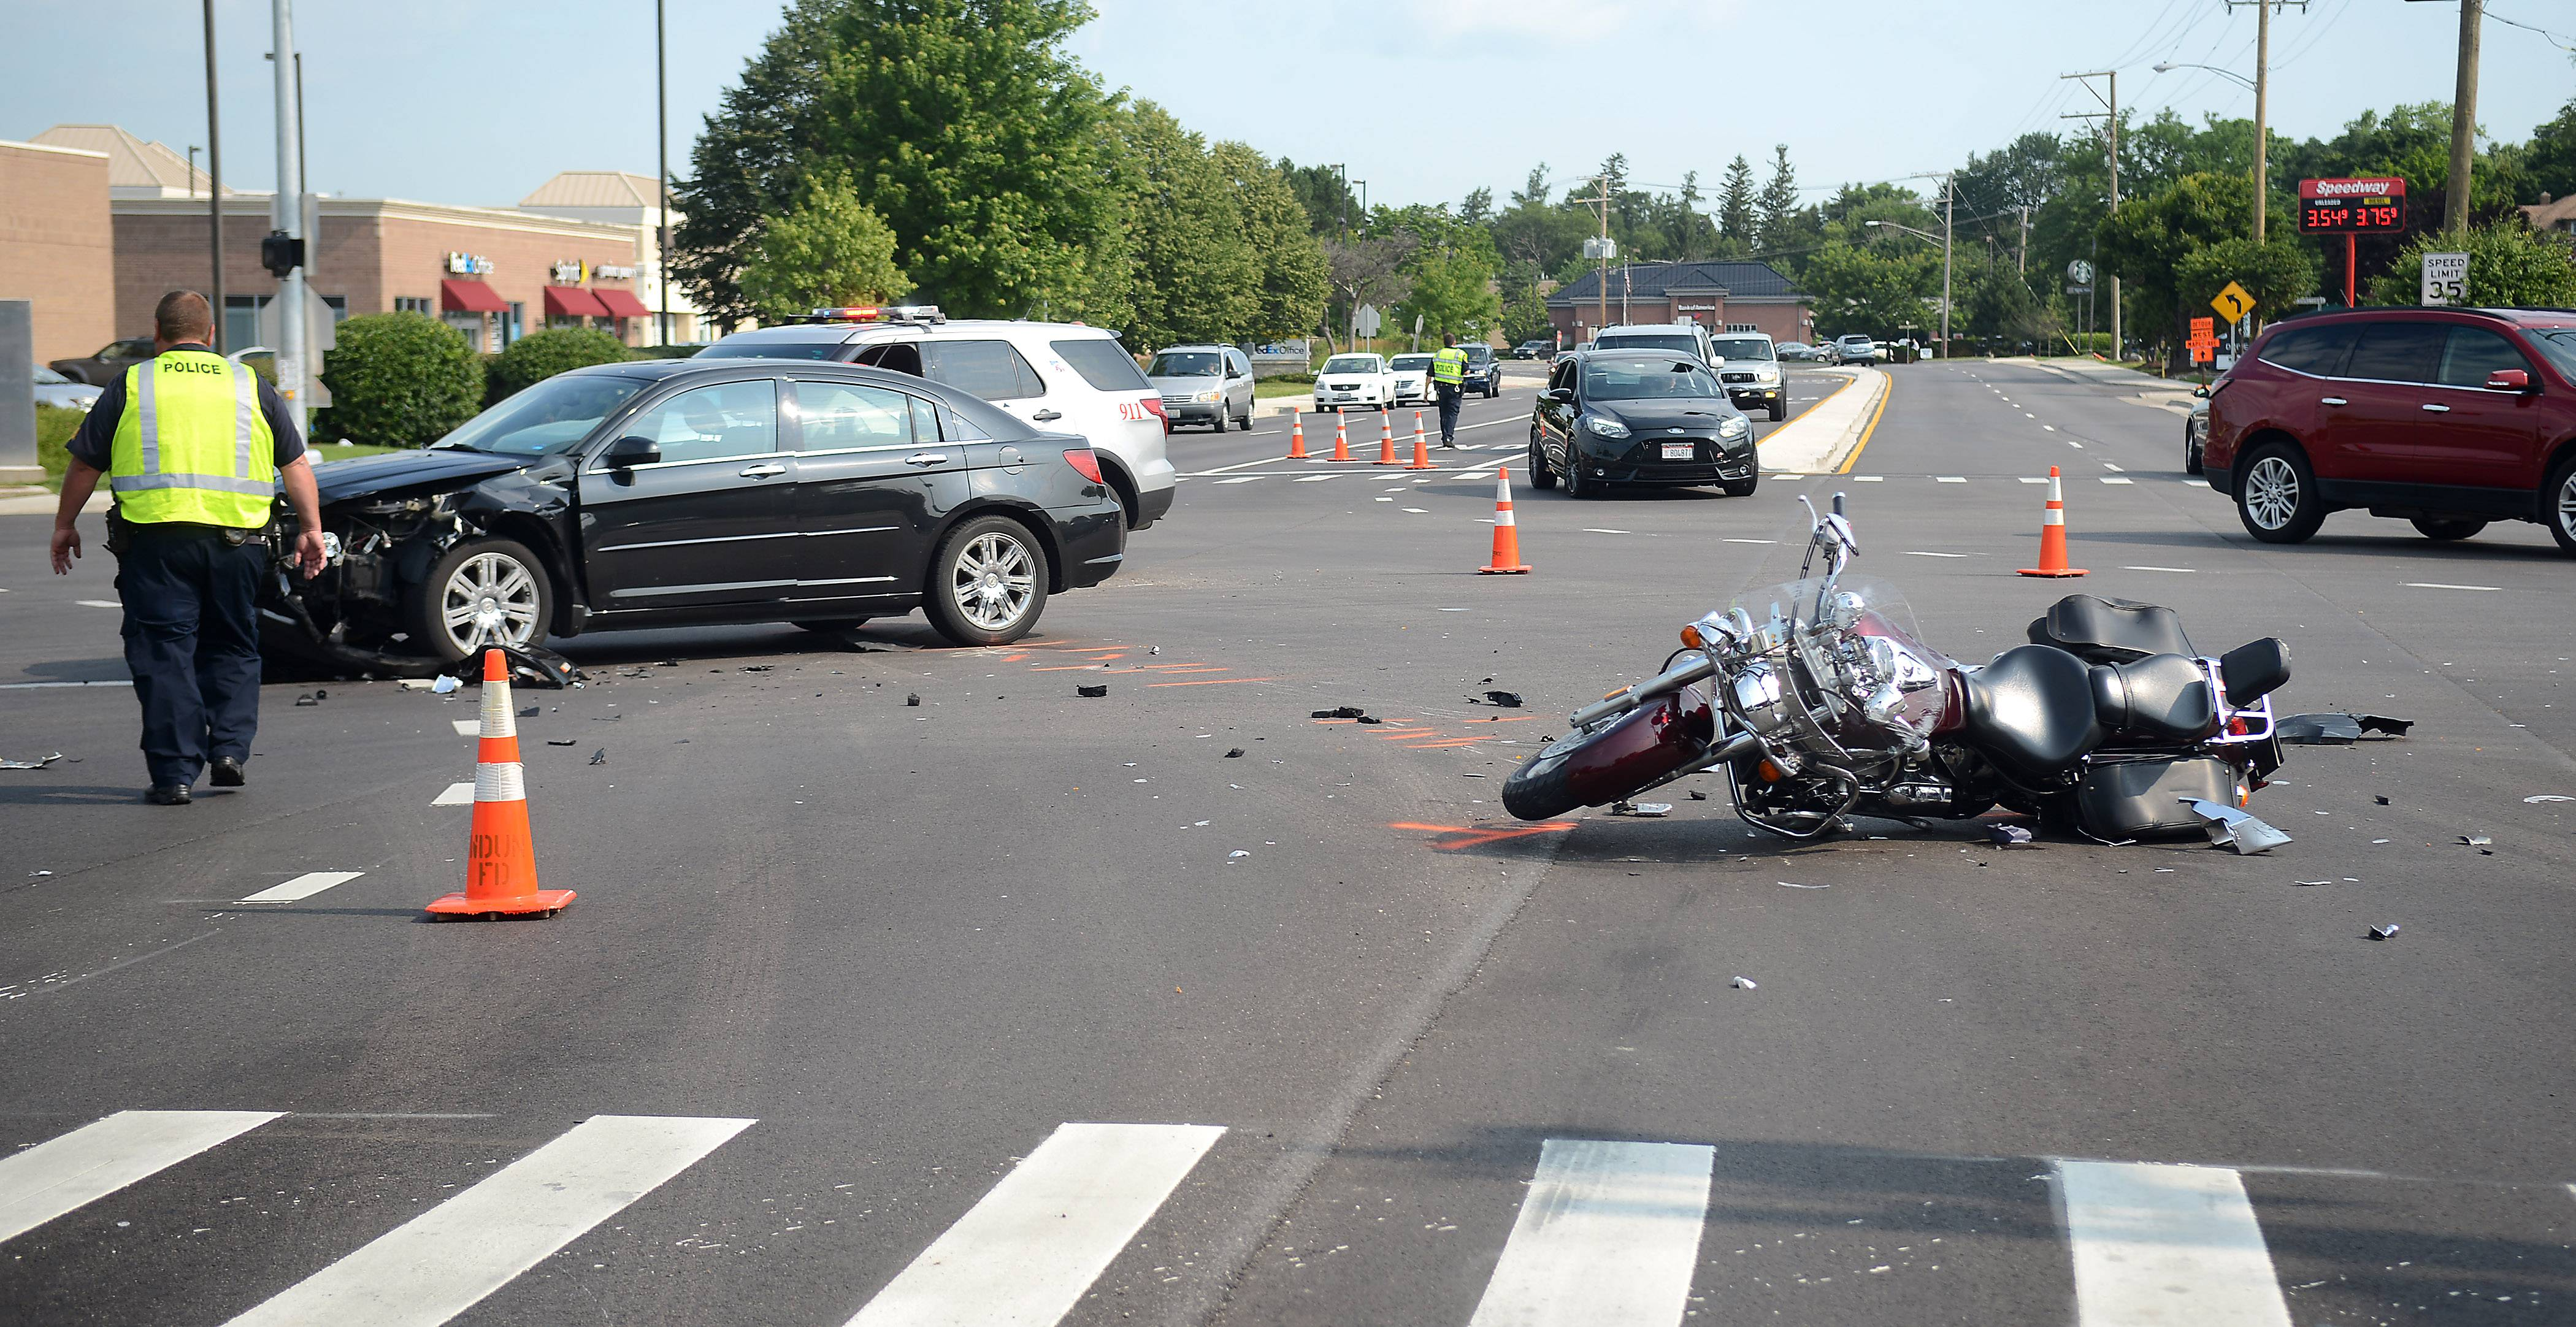 Police investigate the scene of a car and motorcycle crash Friday morning at the intersection of routes 72 and 31 in West Dundee.